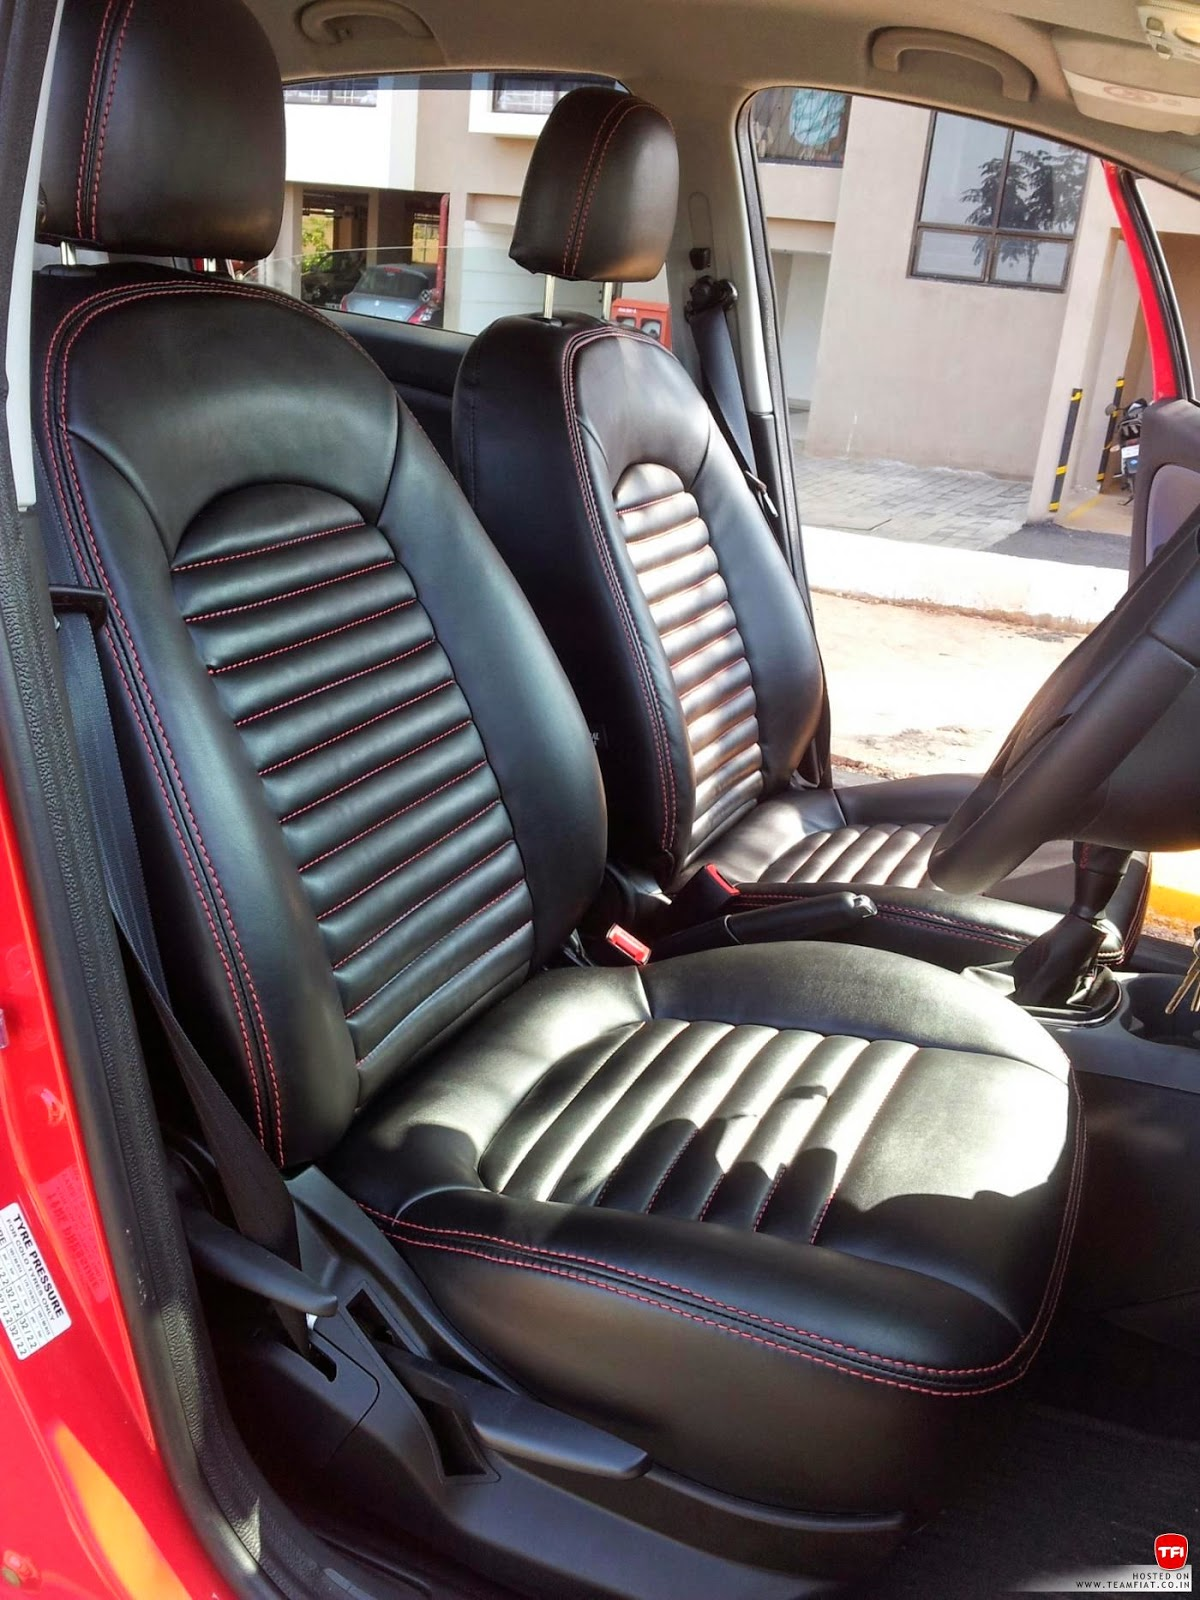 Cover Chair Seat Car For Hemorrhoids Covers In Bangalore Leather